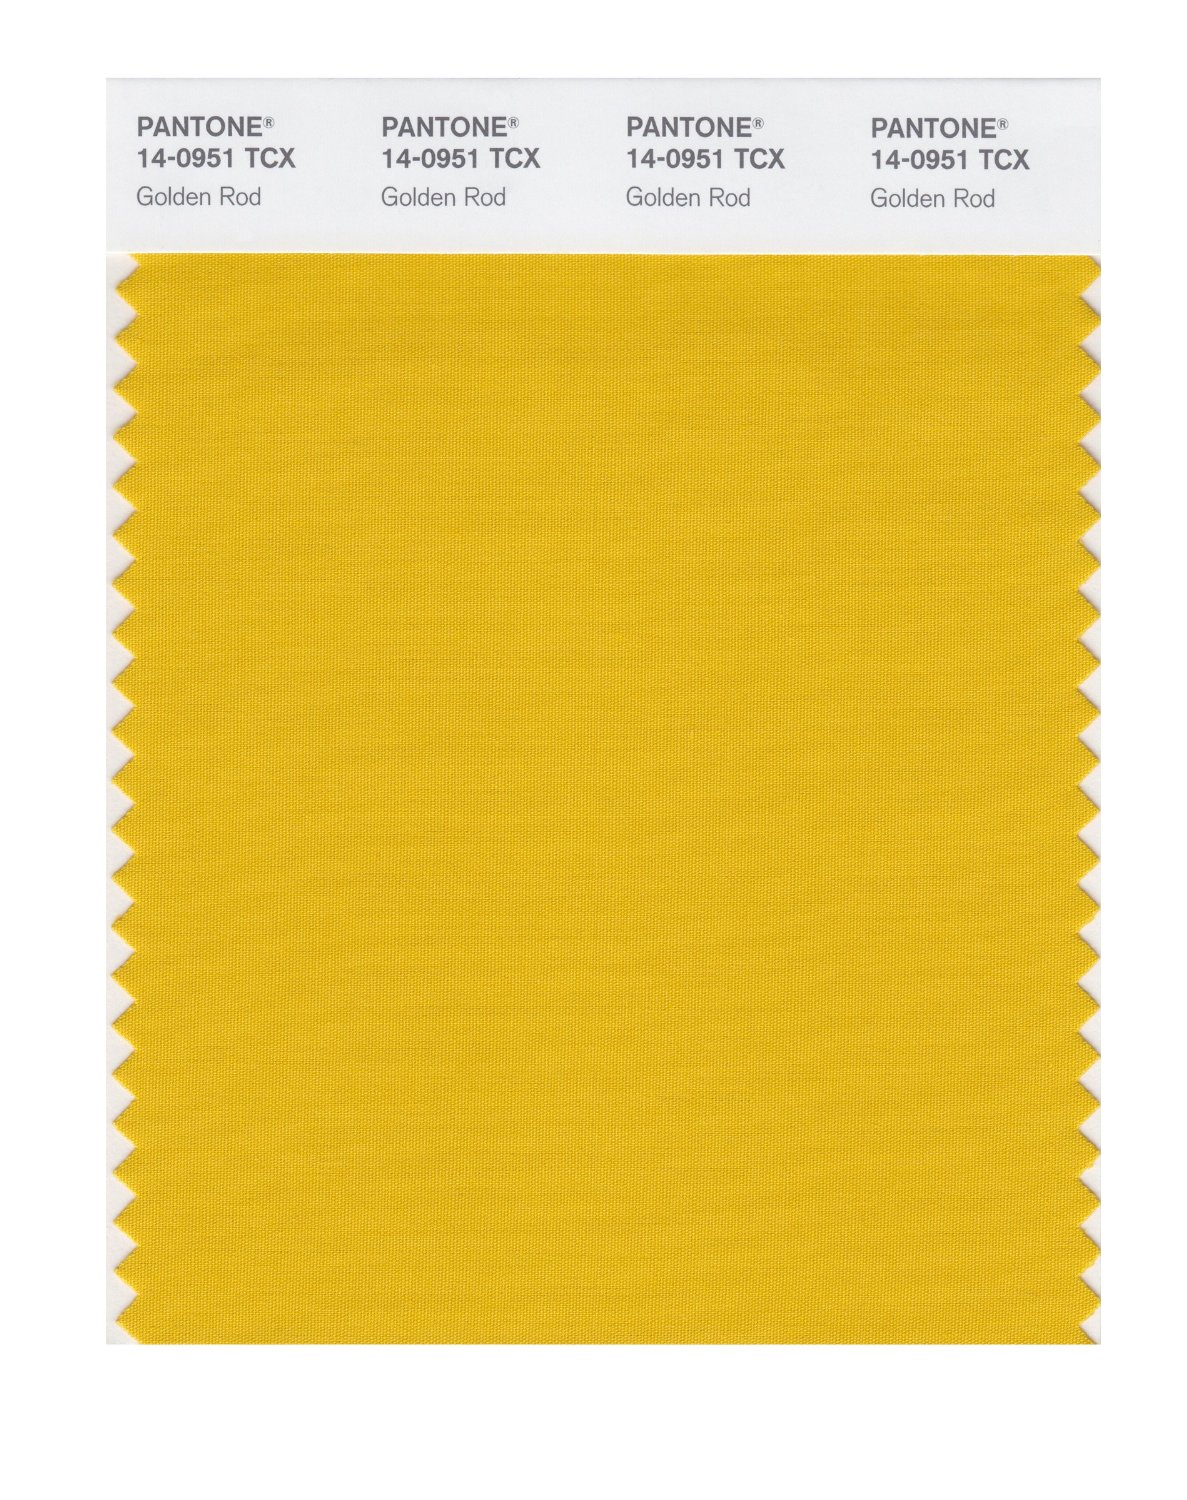 Pantone Smart Swatch 14-0951 Golden Rod